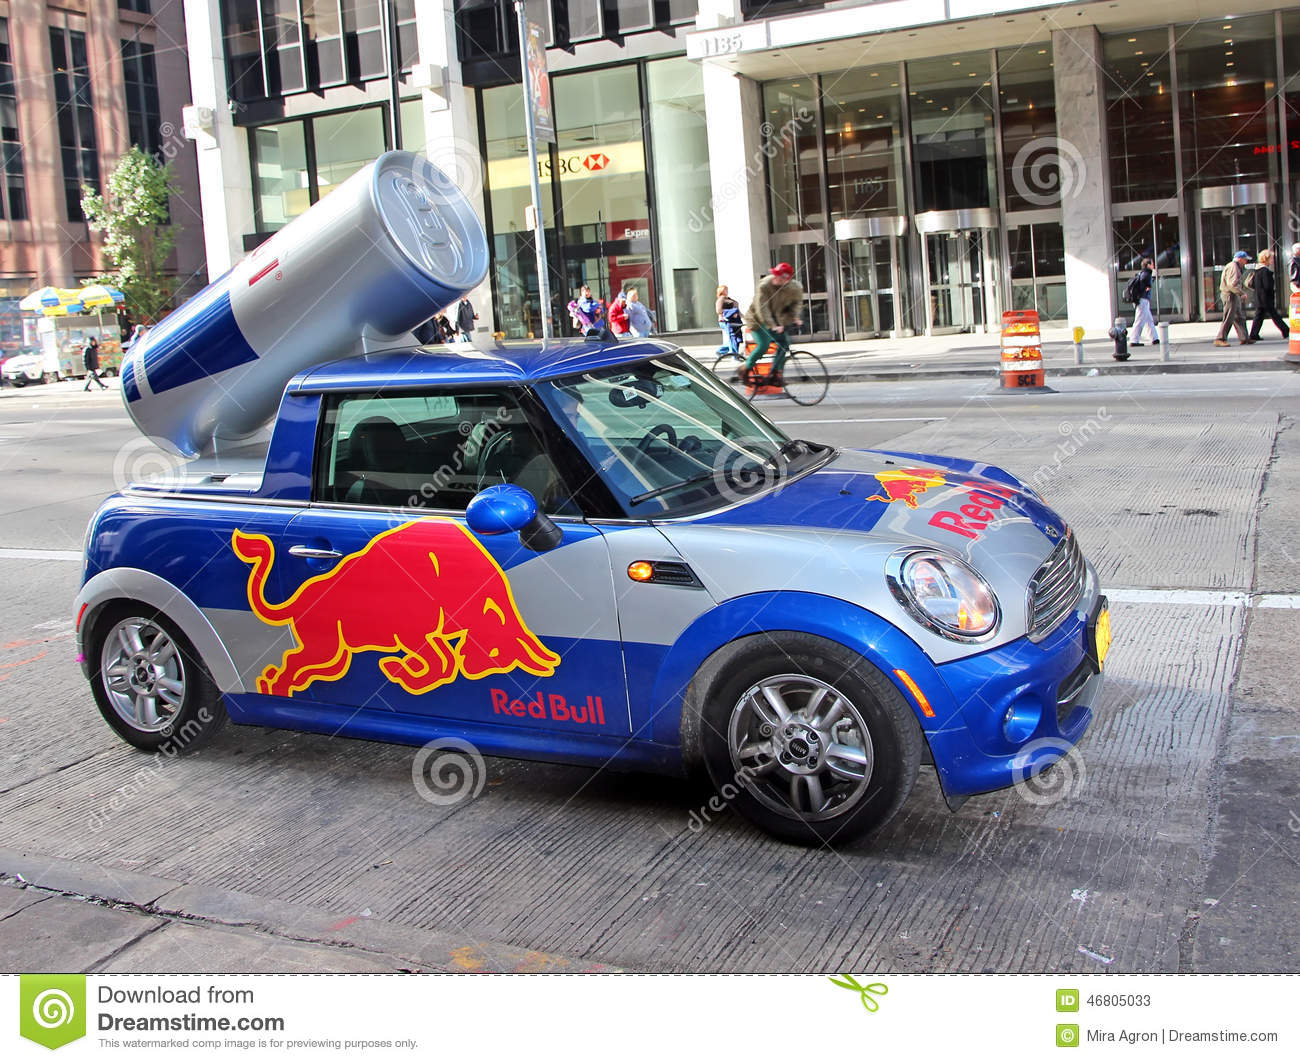 Red Bull Mini Cooper Editorial Stock Photo Image Of Back 46805033